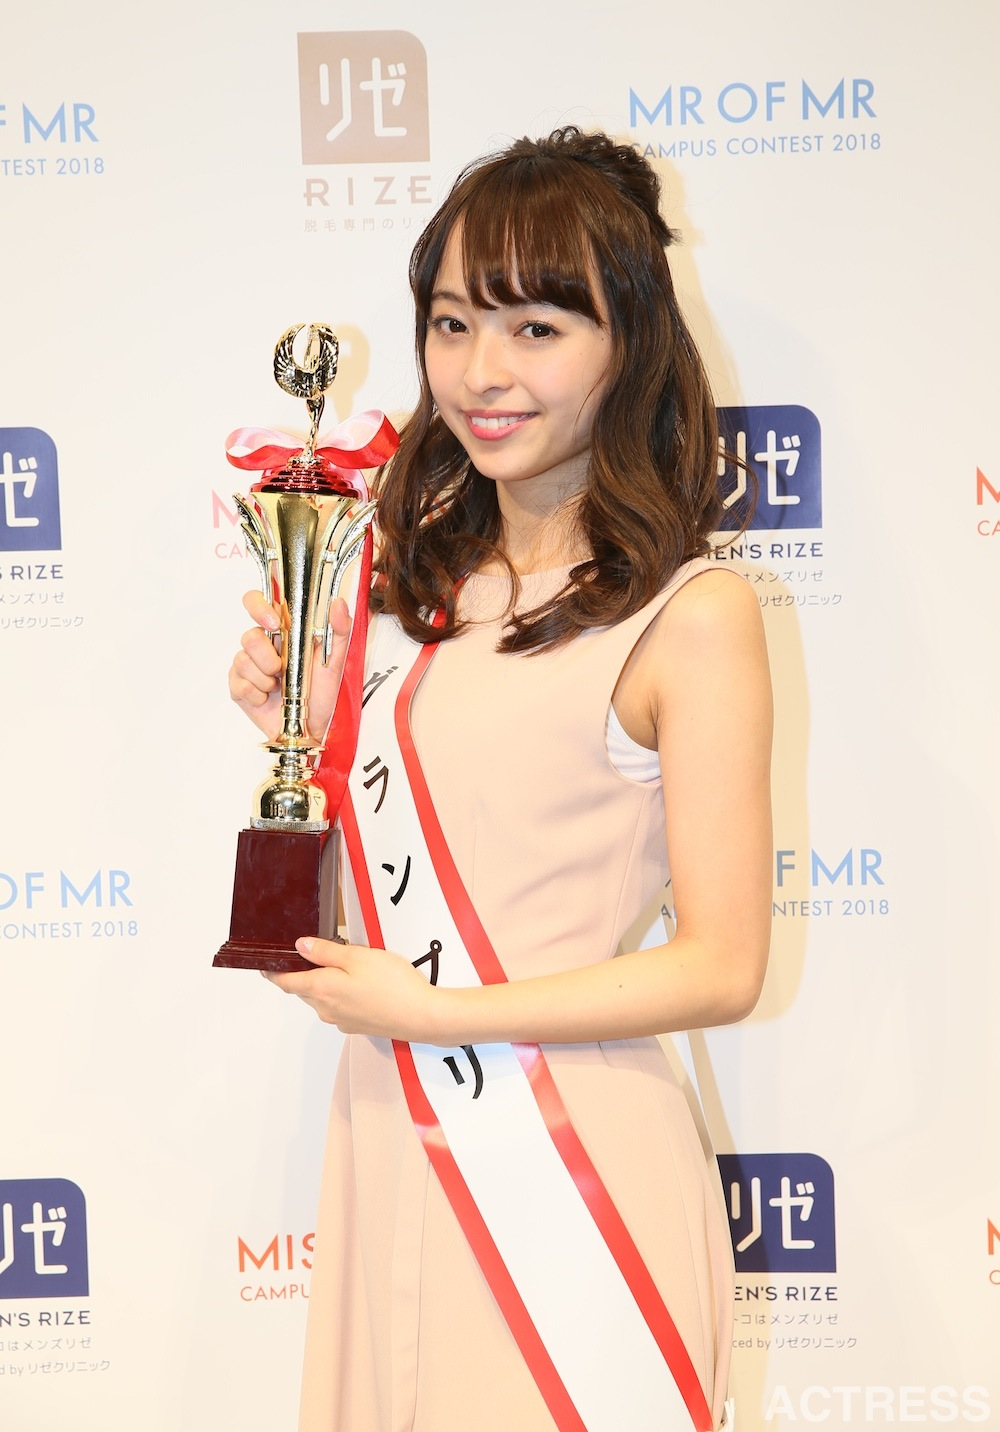 黒口那津「Miss of Miss CAMPUS QUEEN CONTEST 2018」グランプリ